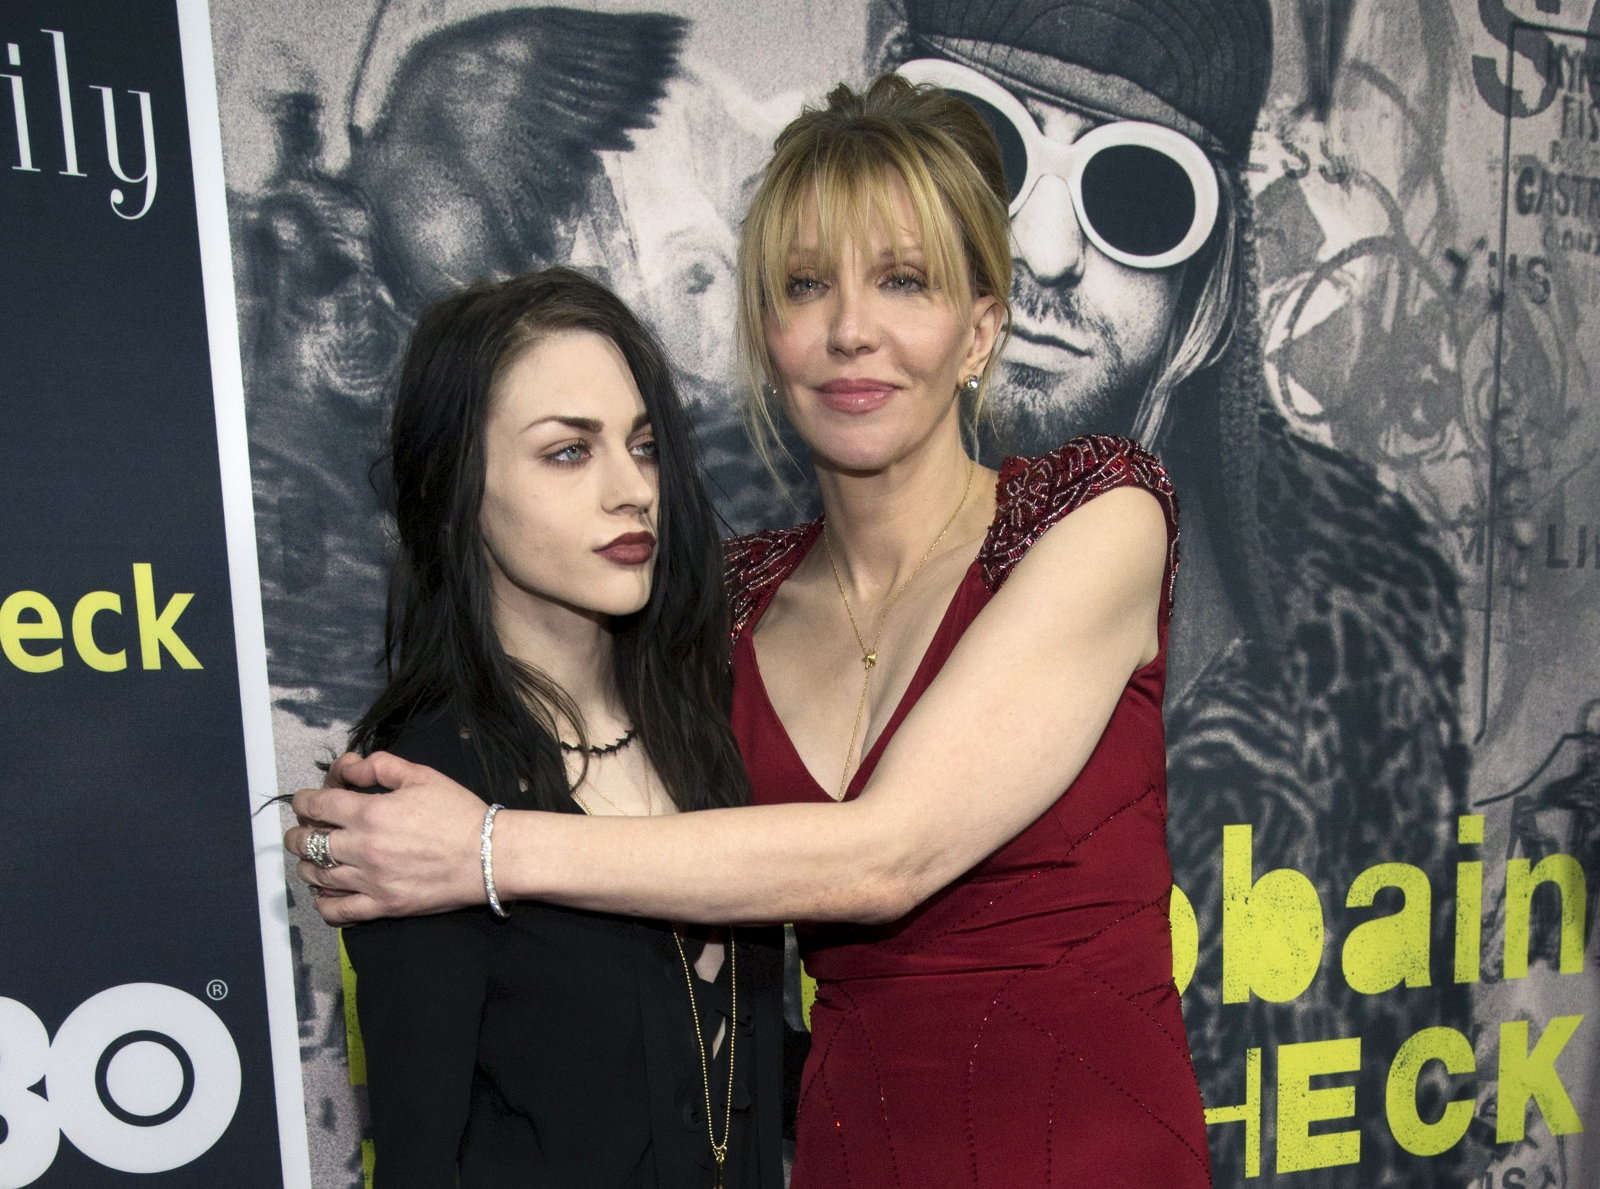 Courtney Love and Frances Cobain